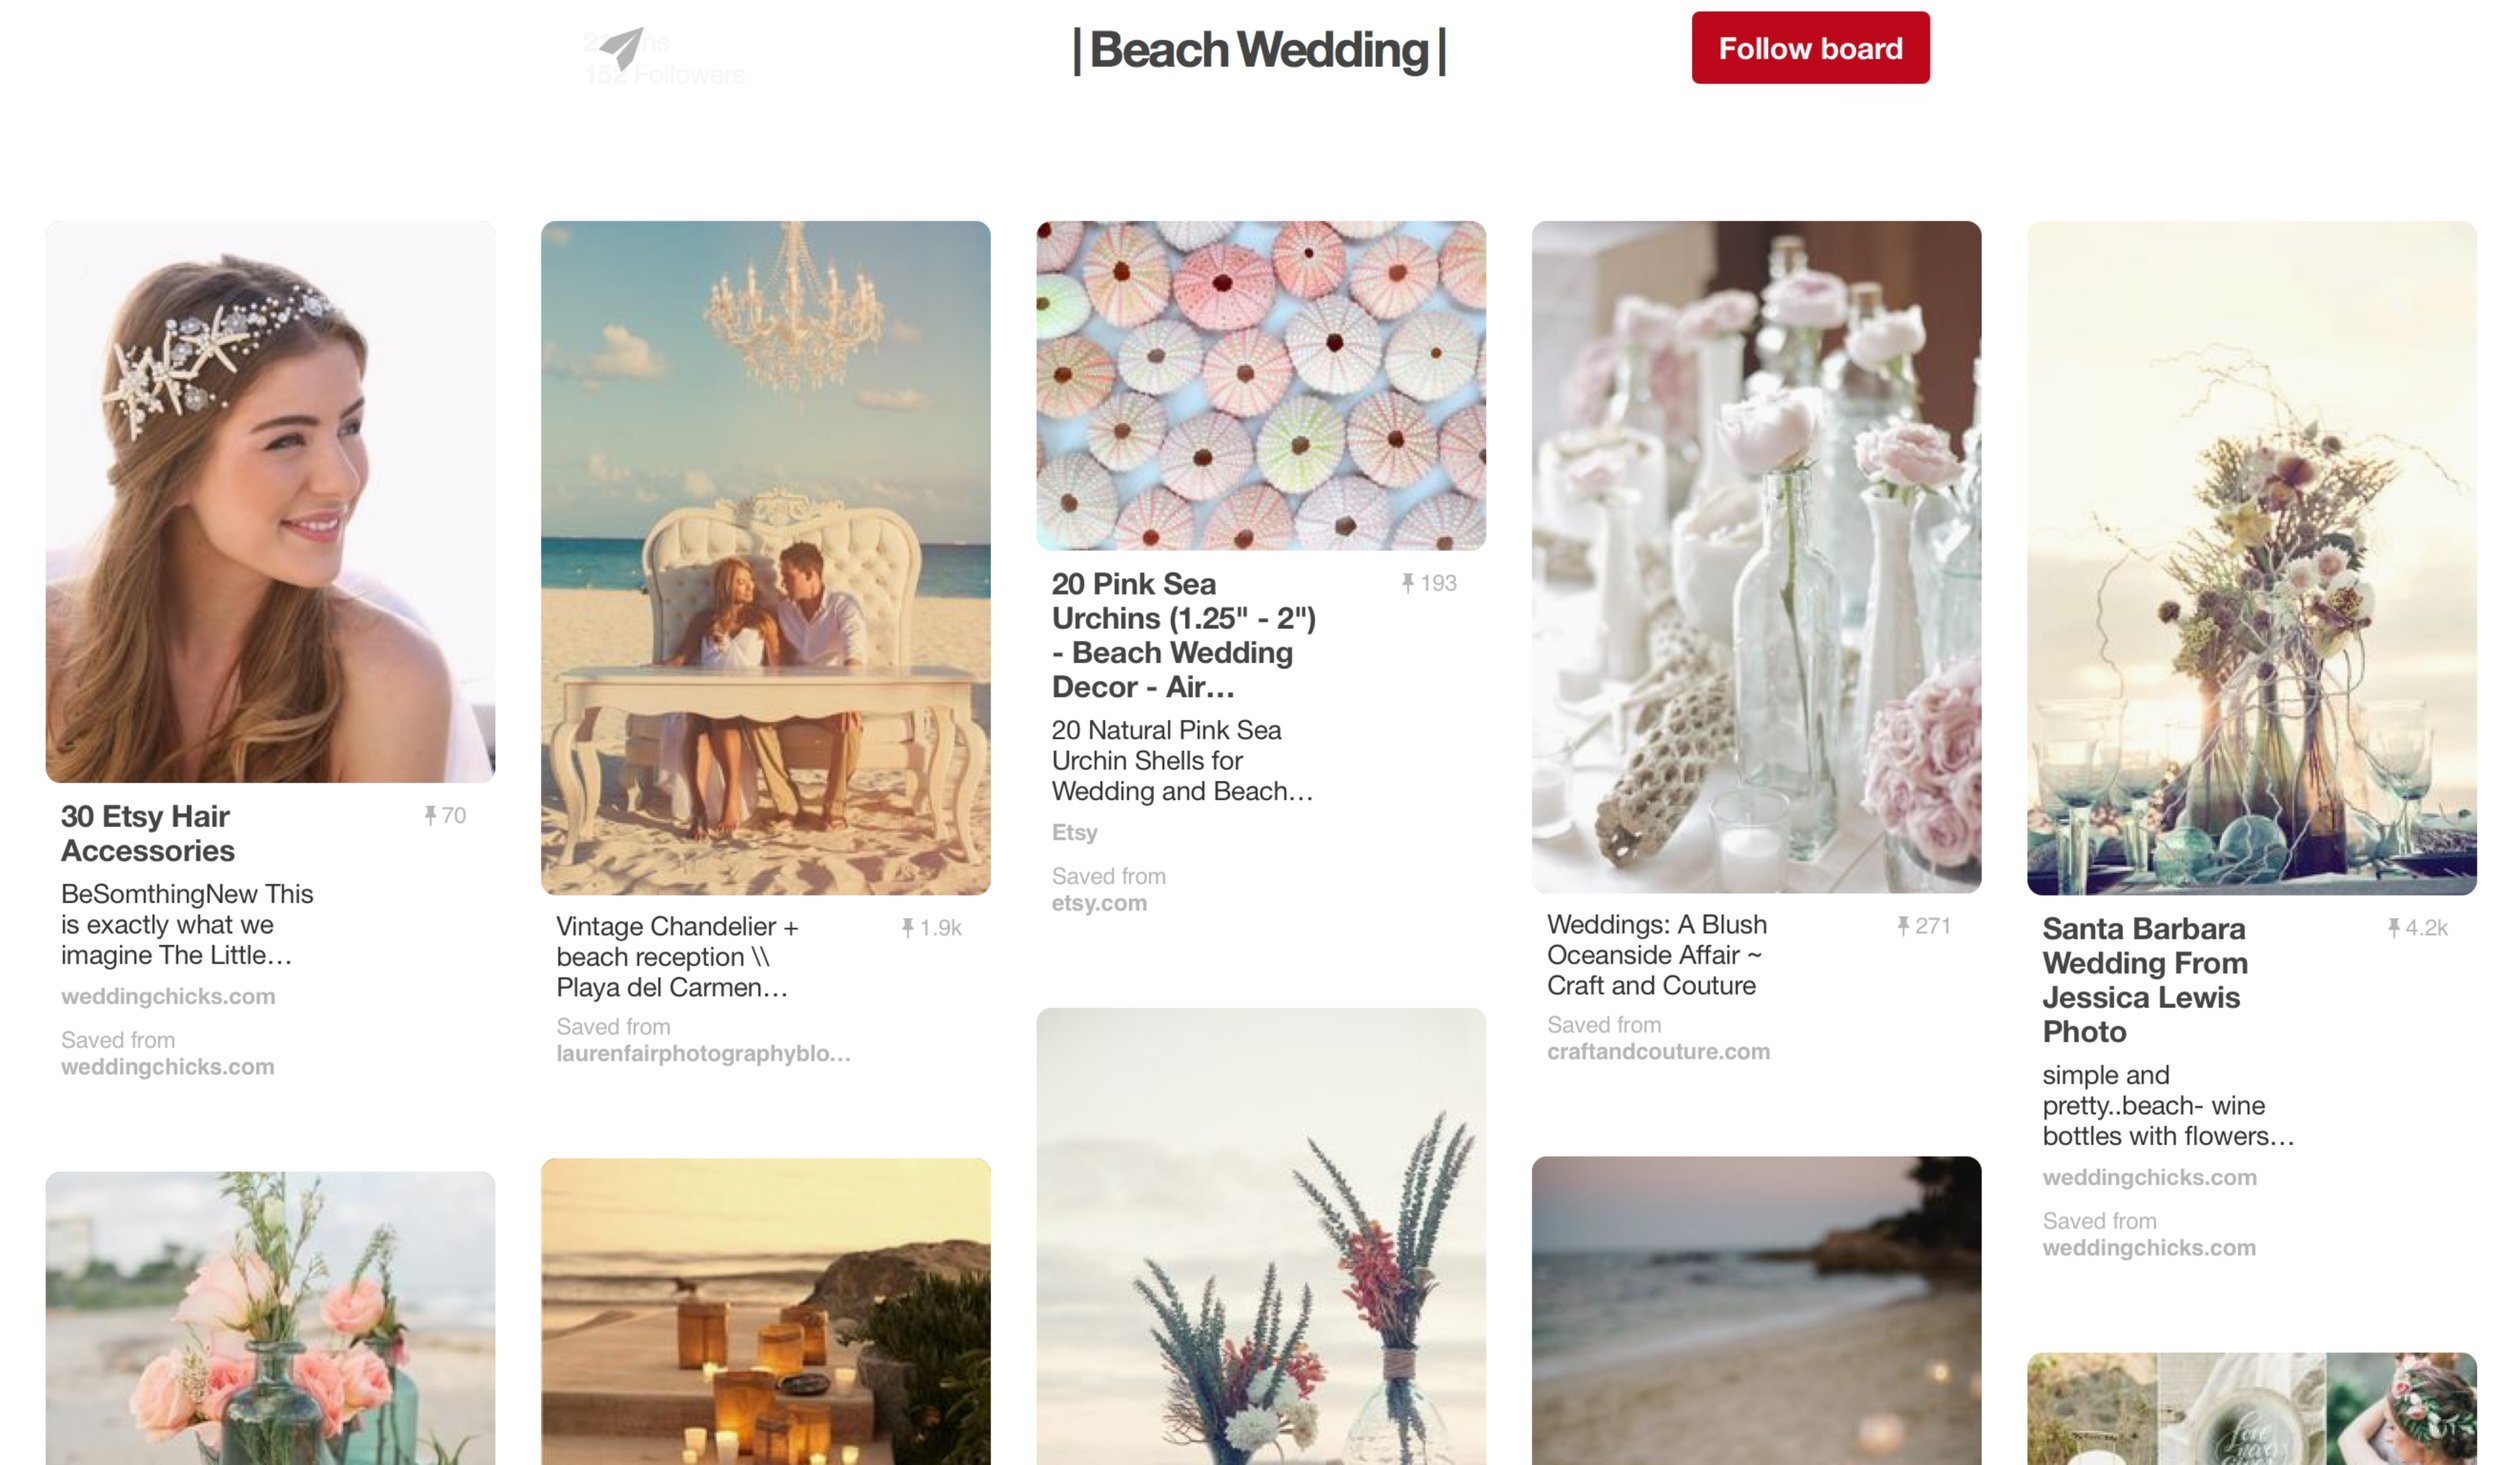 beach-wedding.jpg